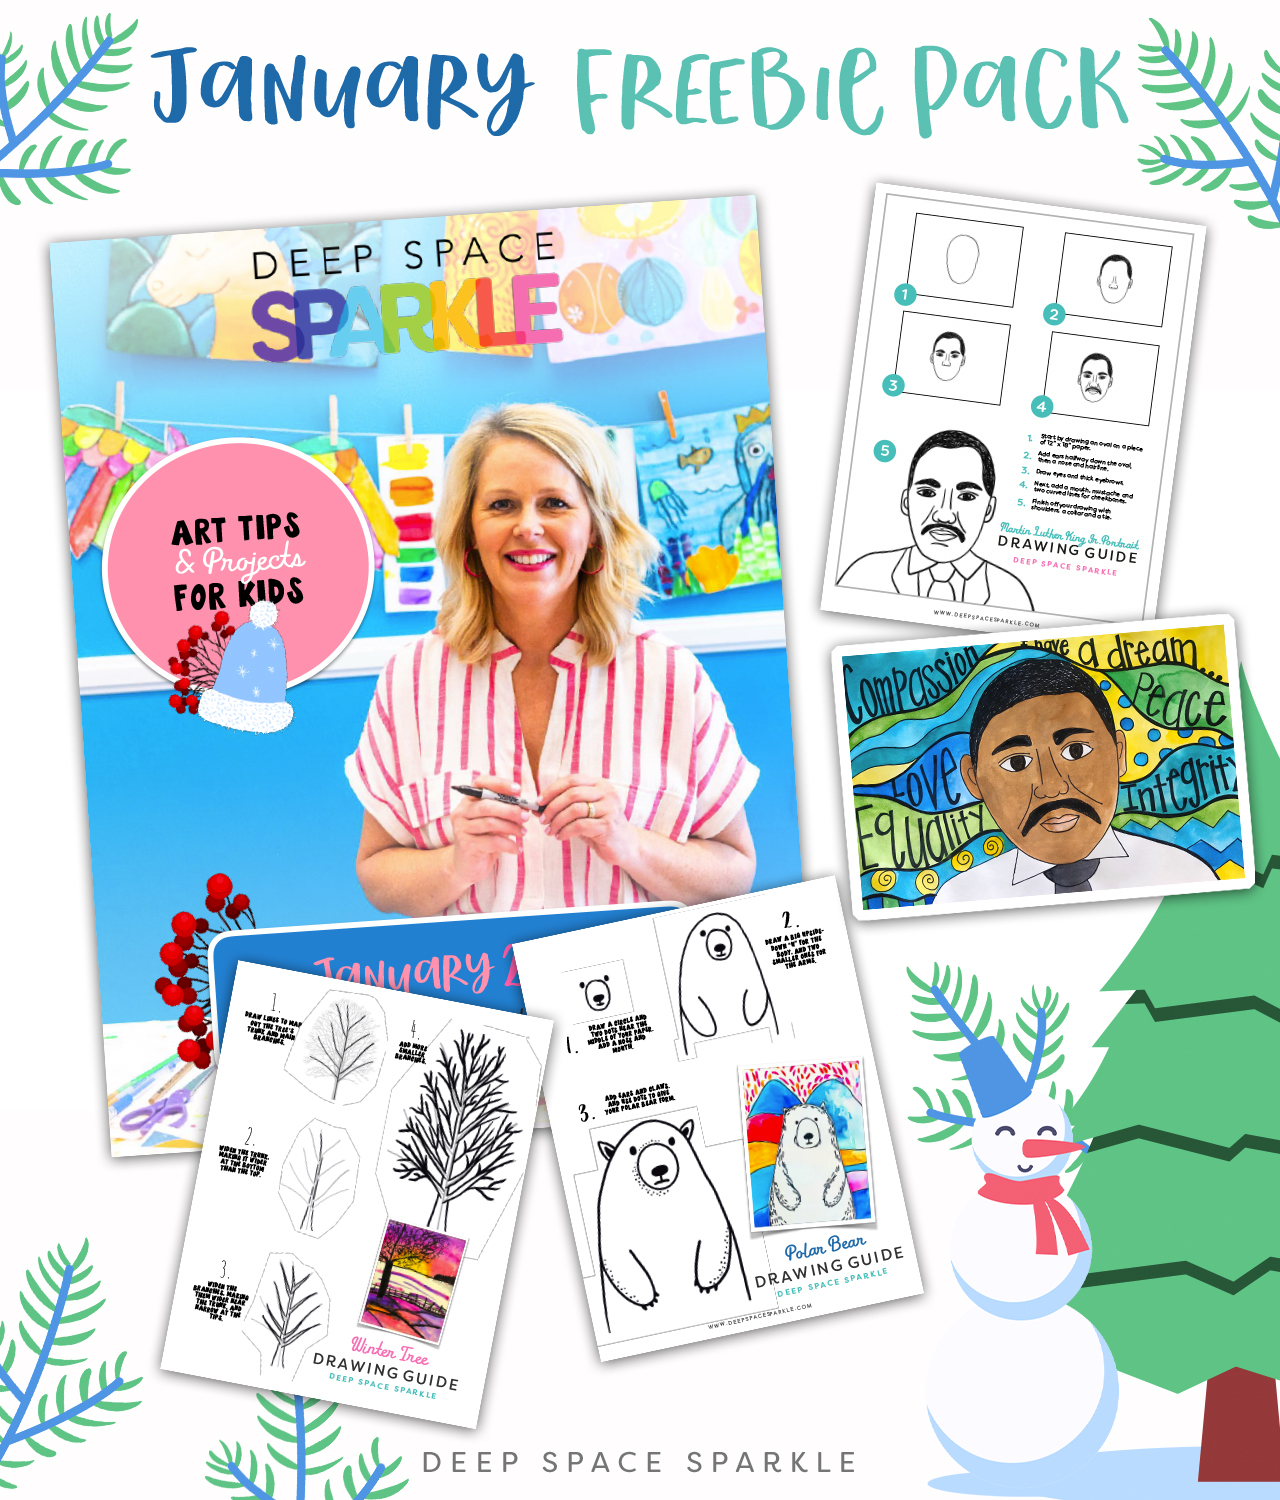 january freebie pack for art teachers free winter lessons handouts